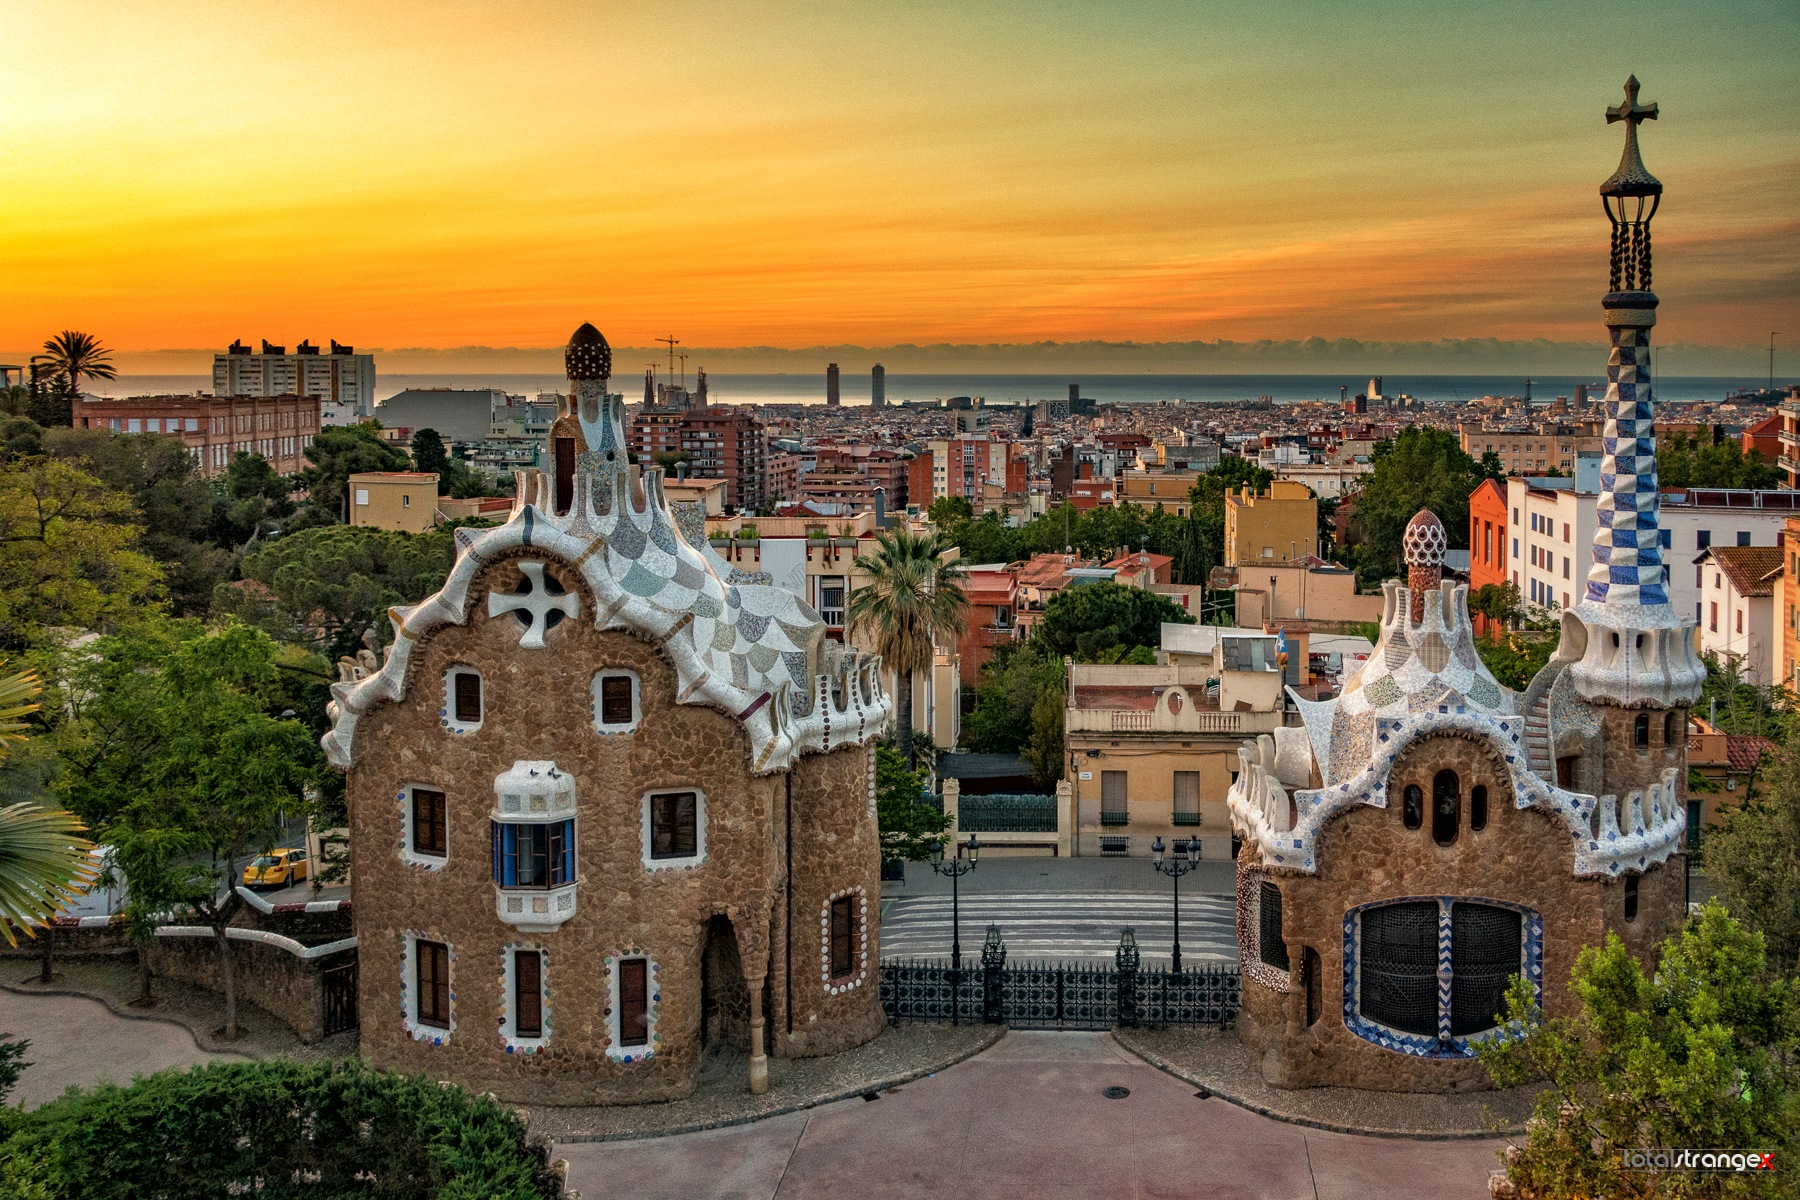 Parque Güell by totalstranger